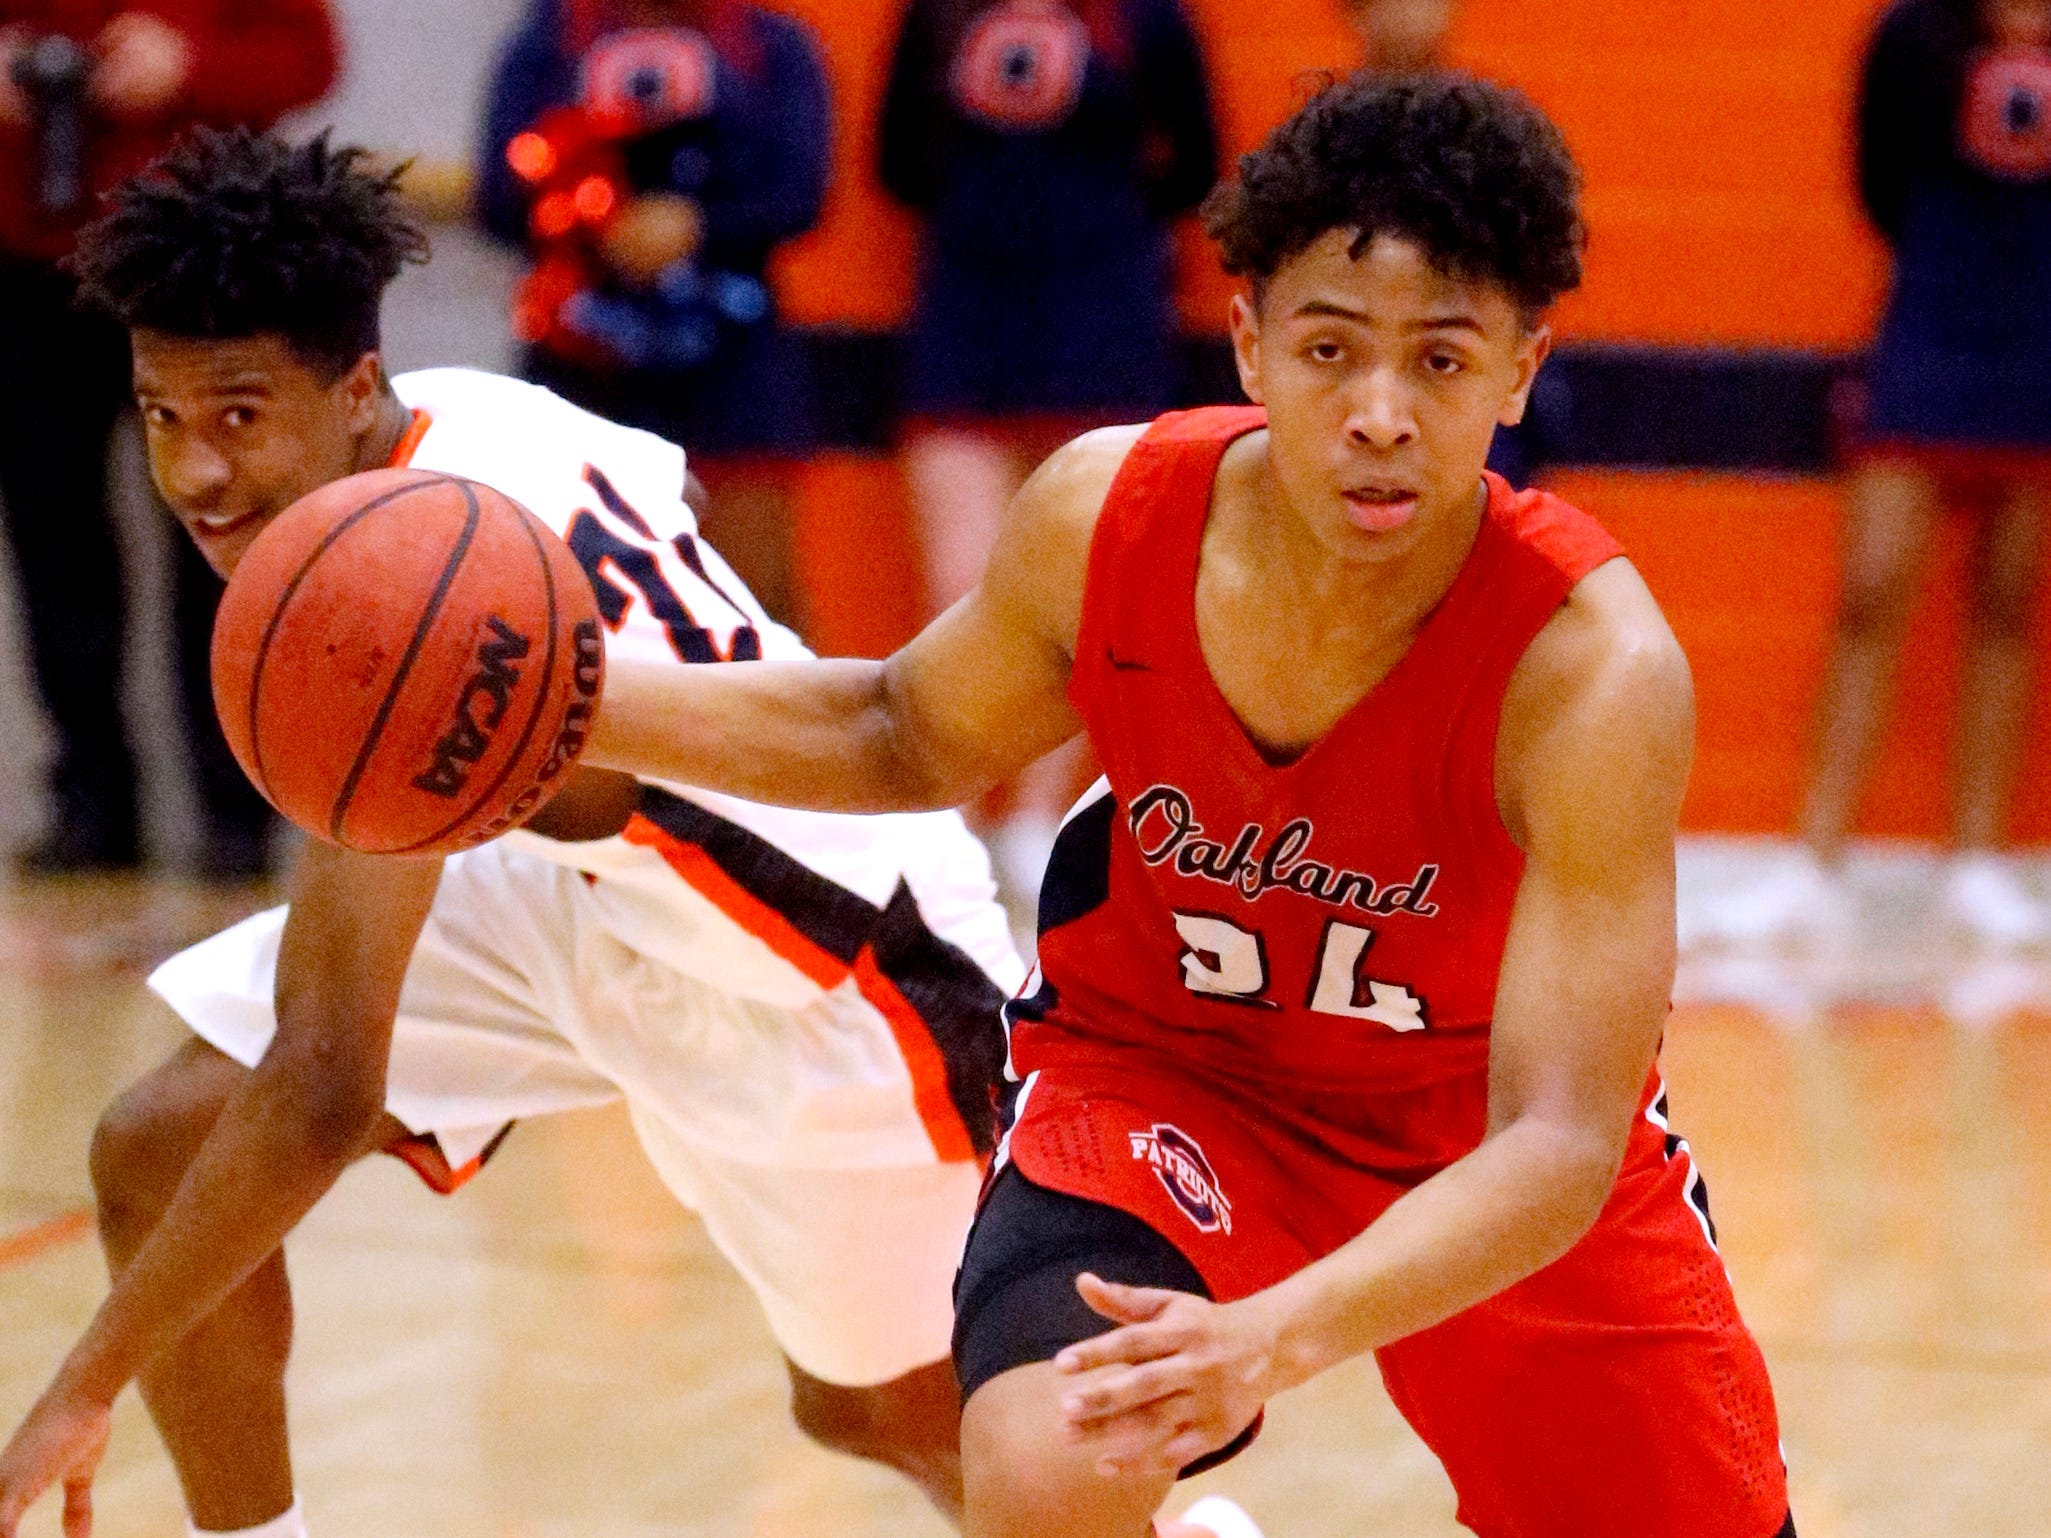 Oakland's Jaden Jamison (24) steals the ball away from Blackman's Todd Lark (21) on Friday, Feb. 8, 2019.